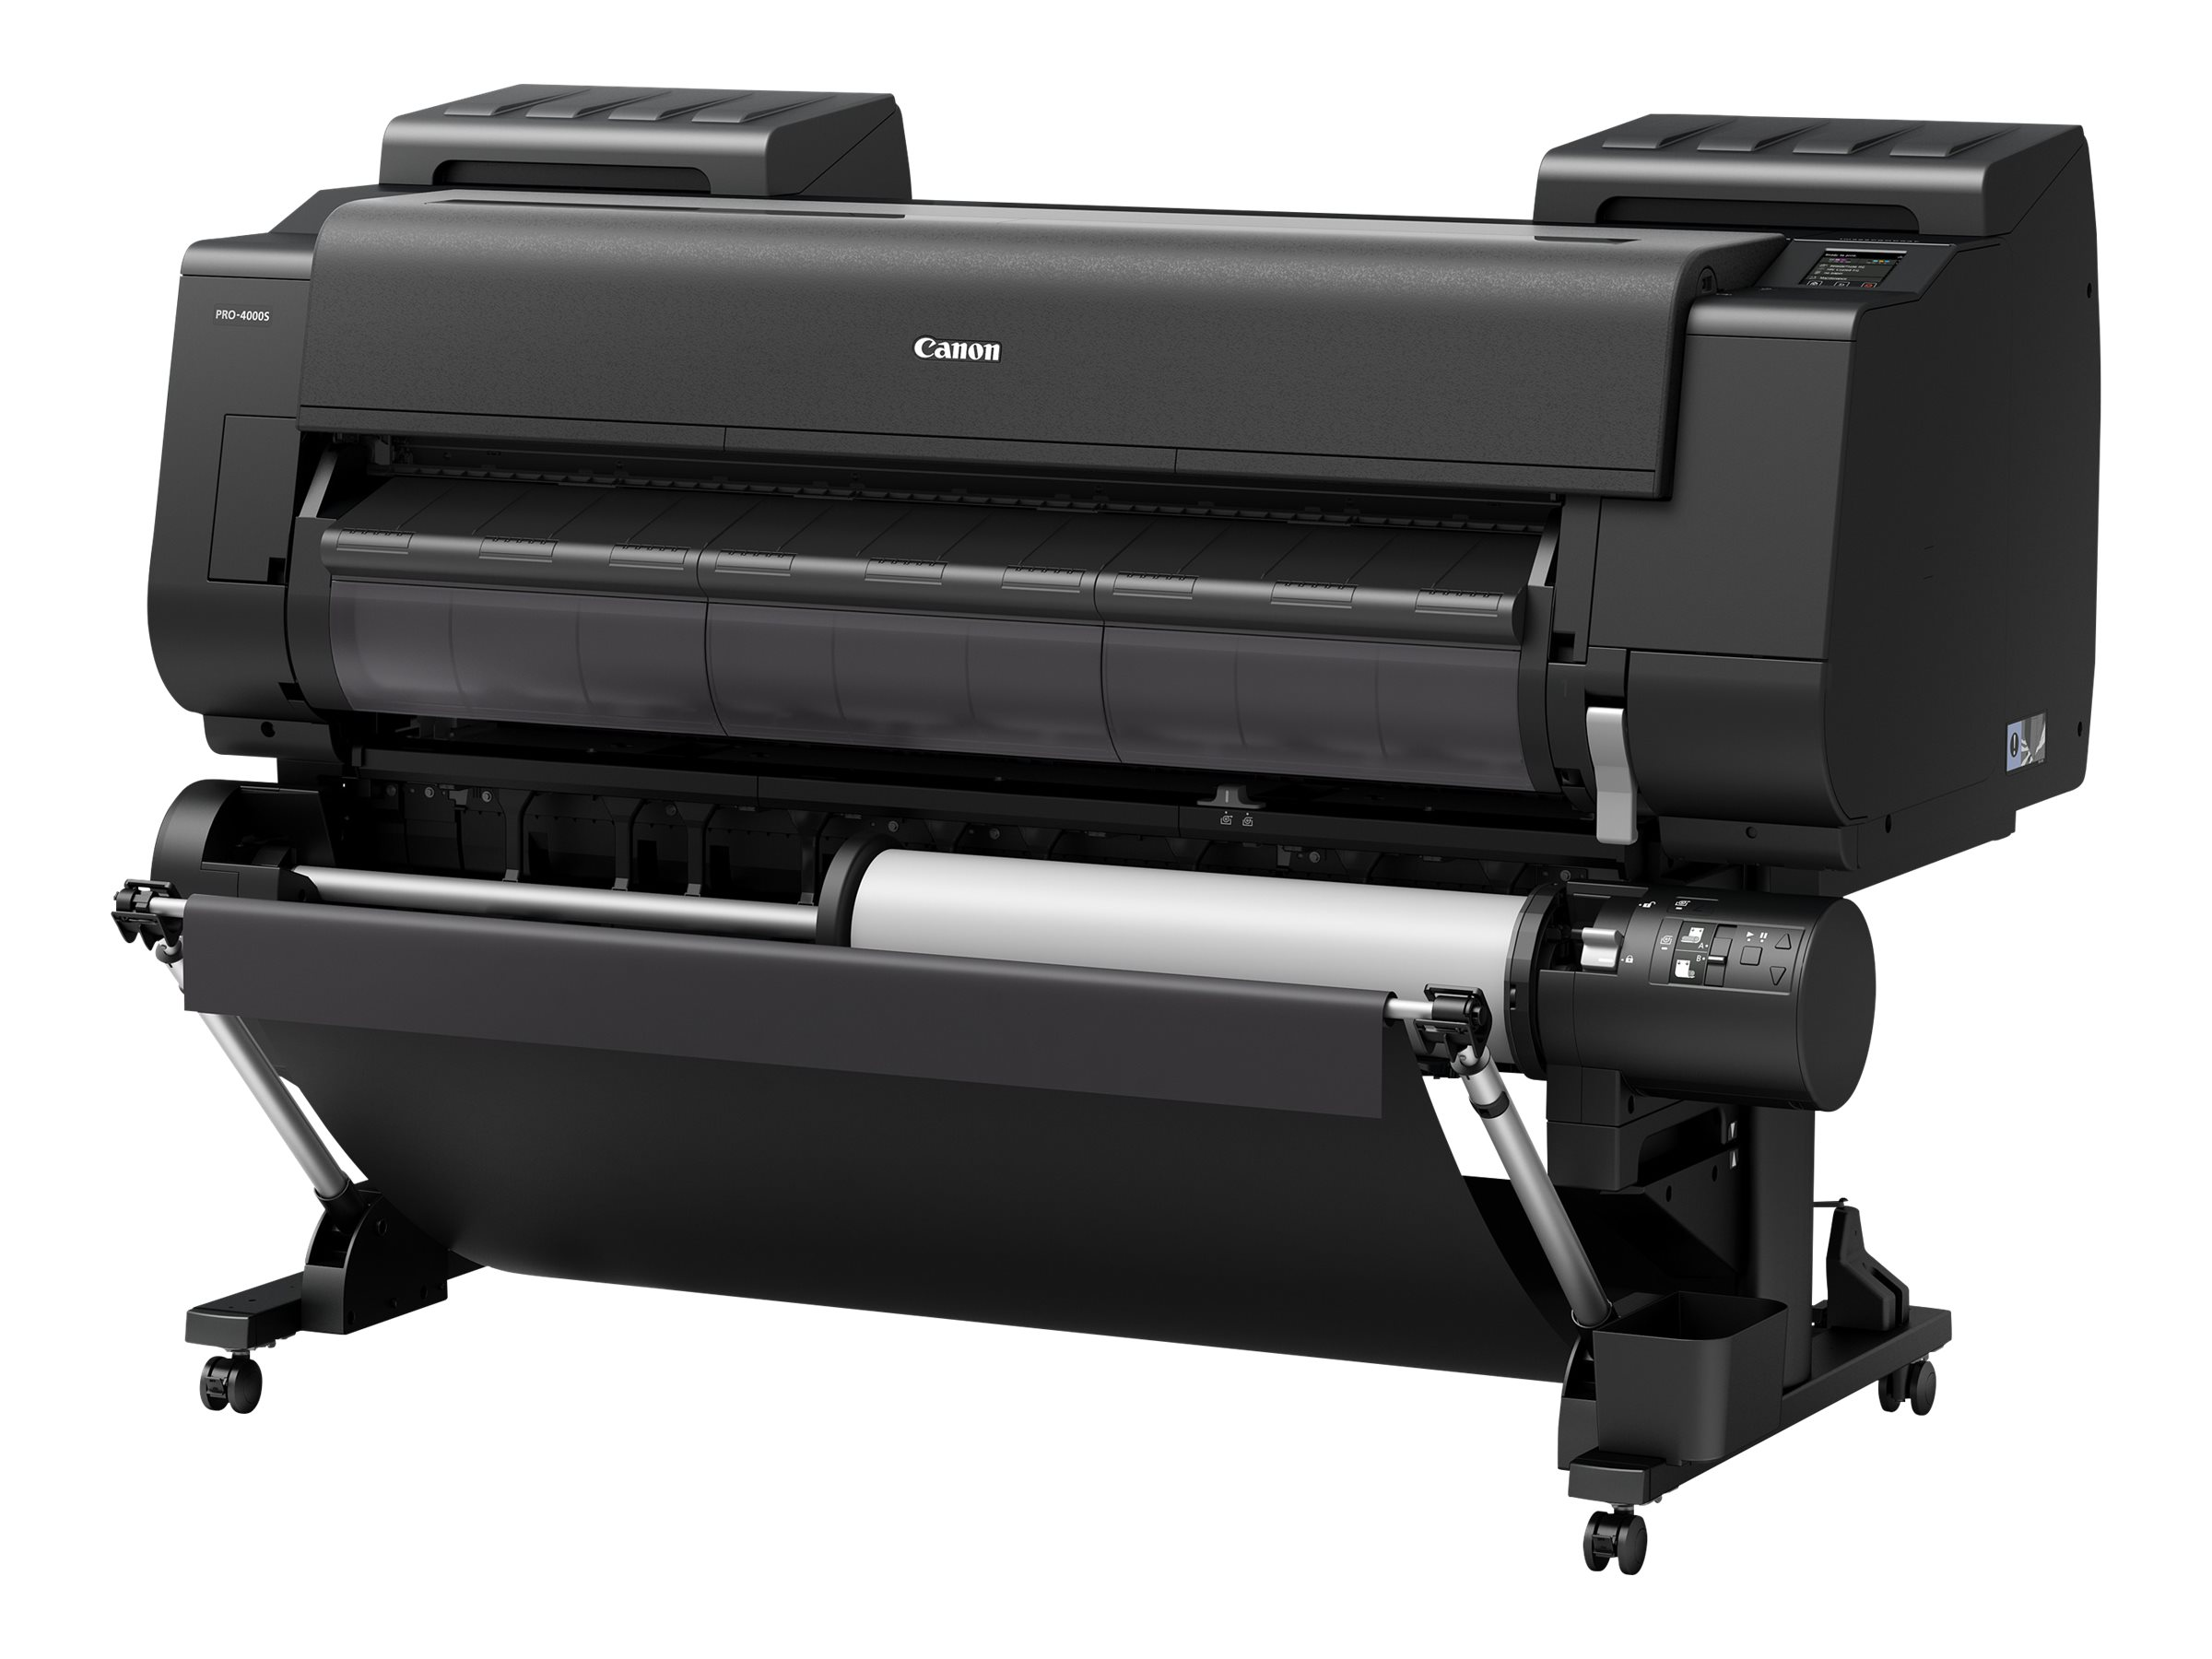 Canon imagePROGRAF PRO-4000S - large-format printer - color - ink-jet